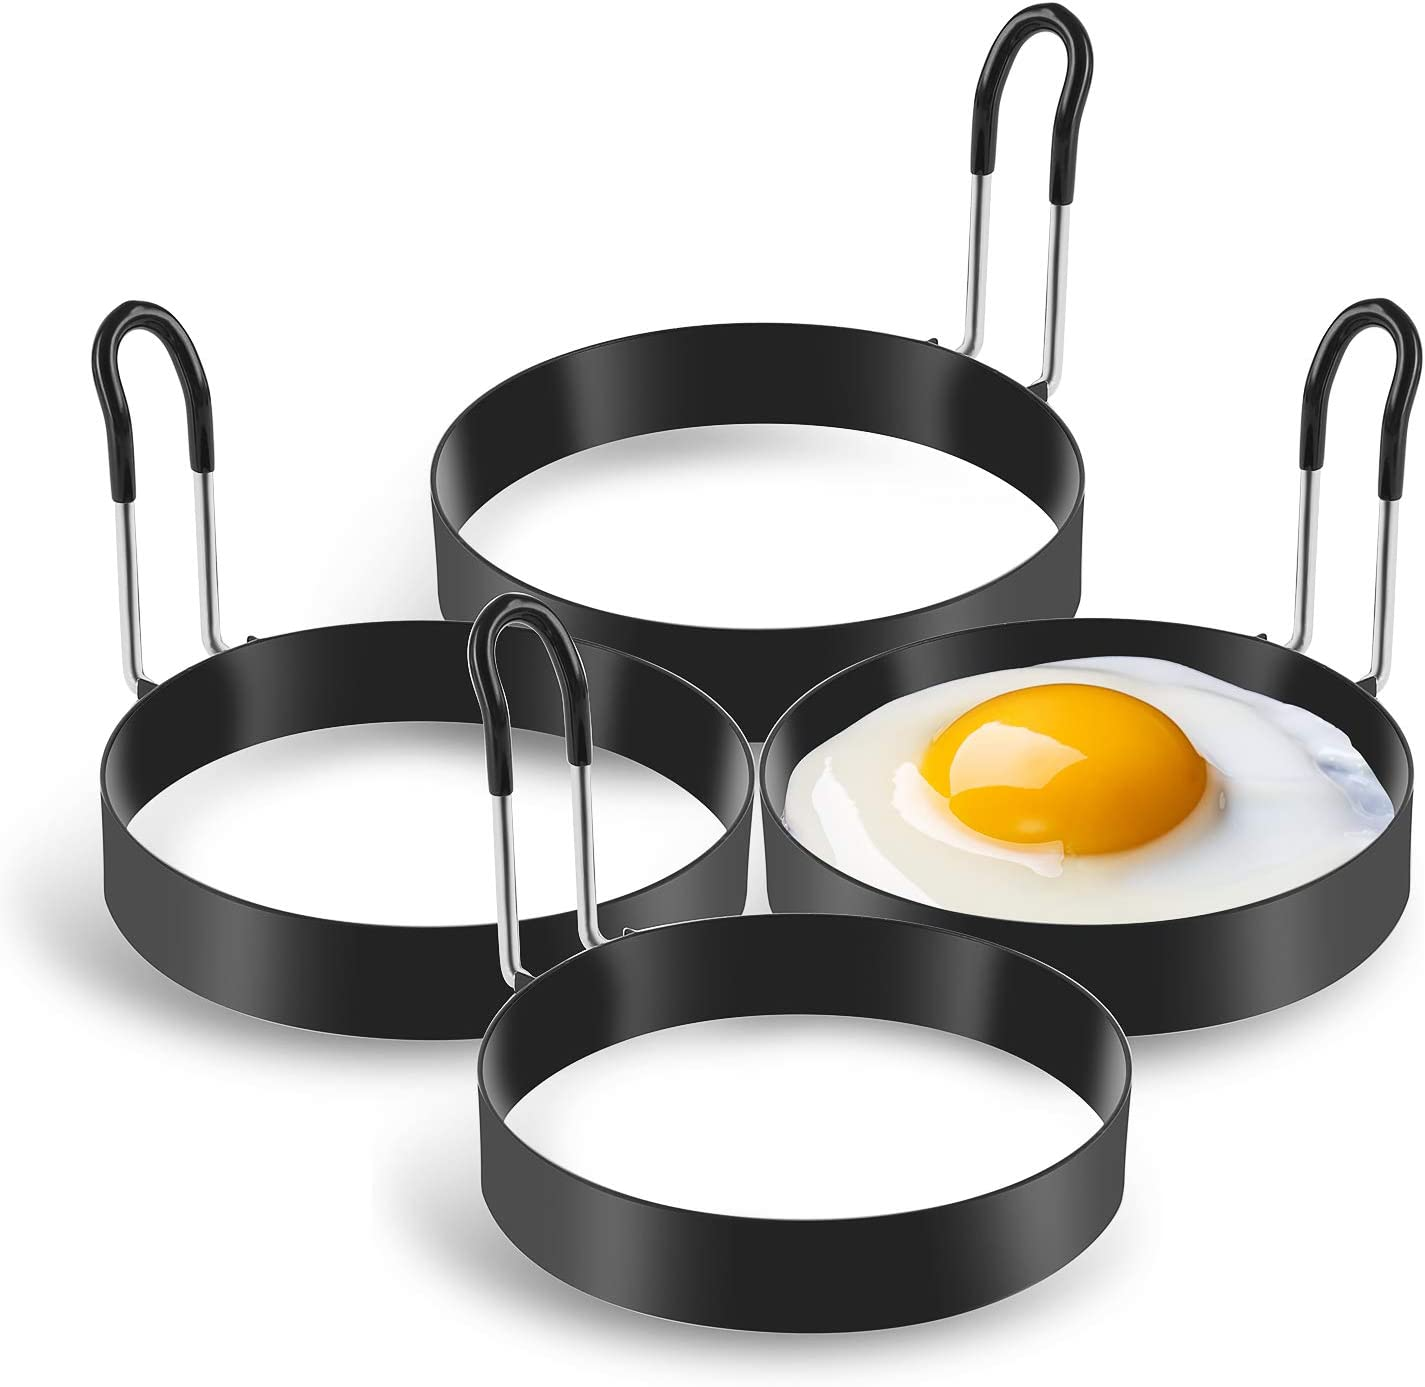 Pancake Mould Cooking Rings for Frying Pan SYOSIN 4-Pack Egg Rings Stainless Steel Non Stick Egg Moulds Egg Shaper Set